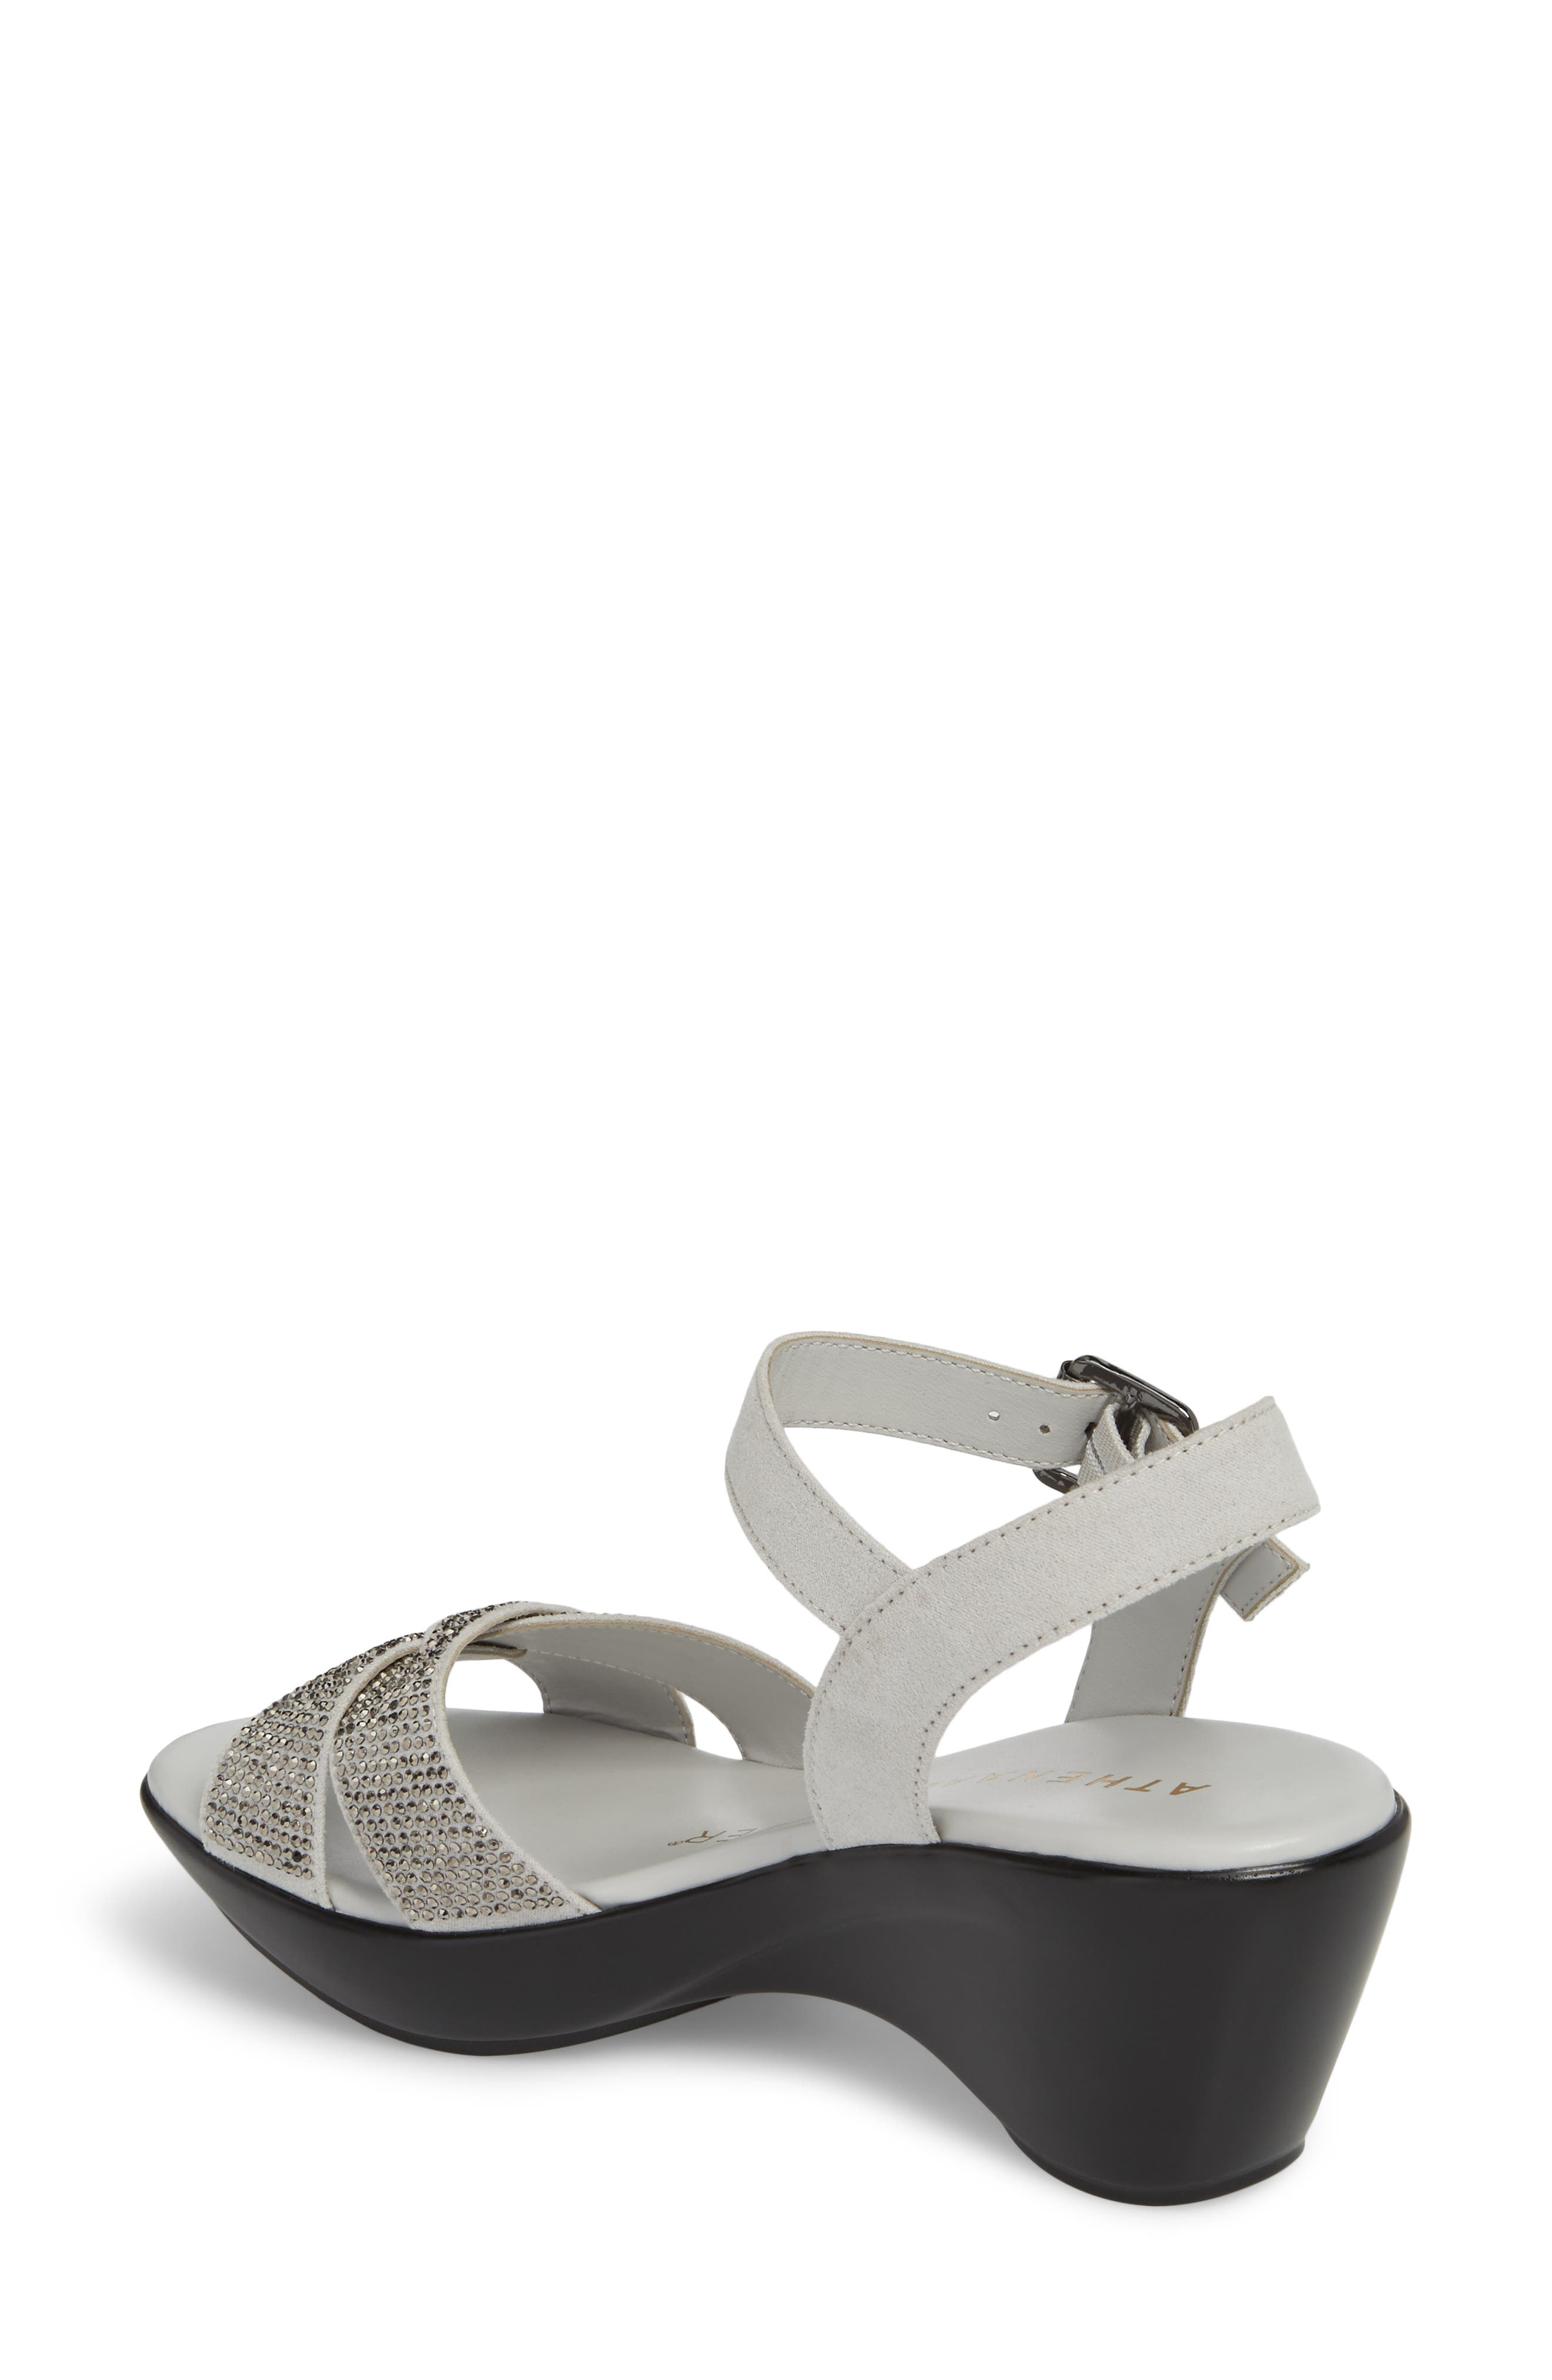 Florence Wedge Sandal,                             Alternate thumbnail 2, color,                             GREY FAUX SUEDE